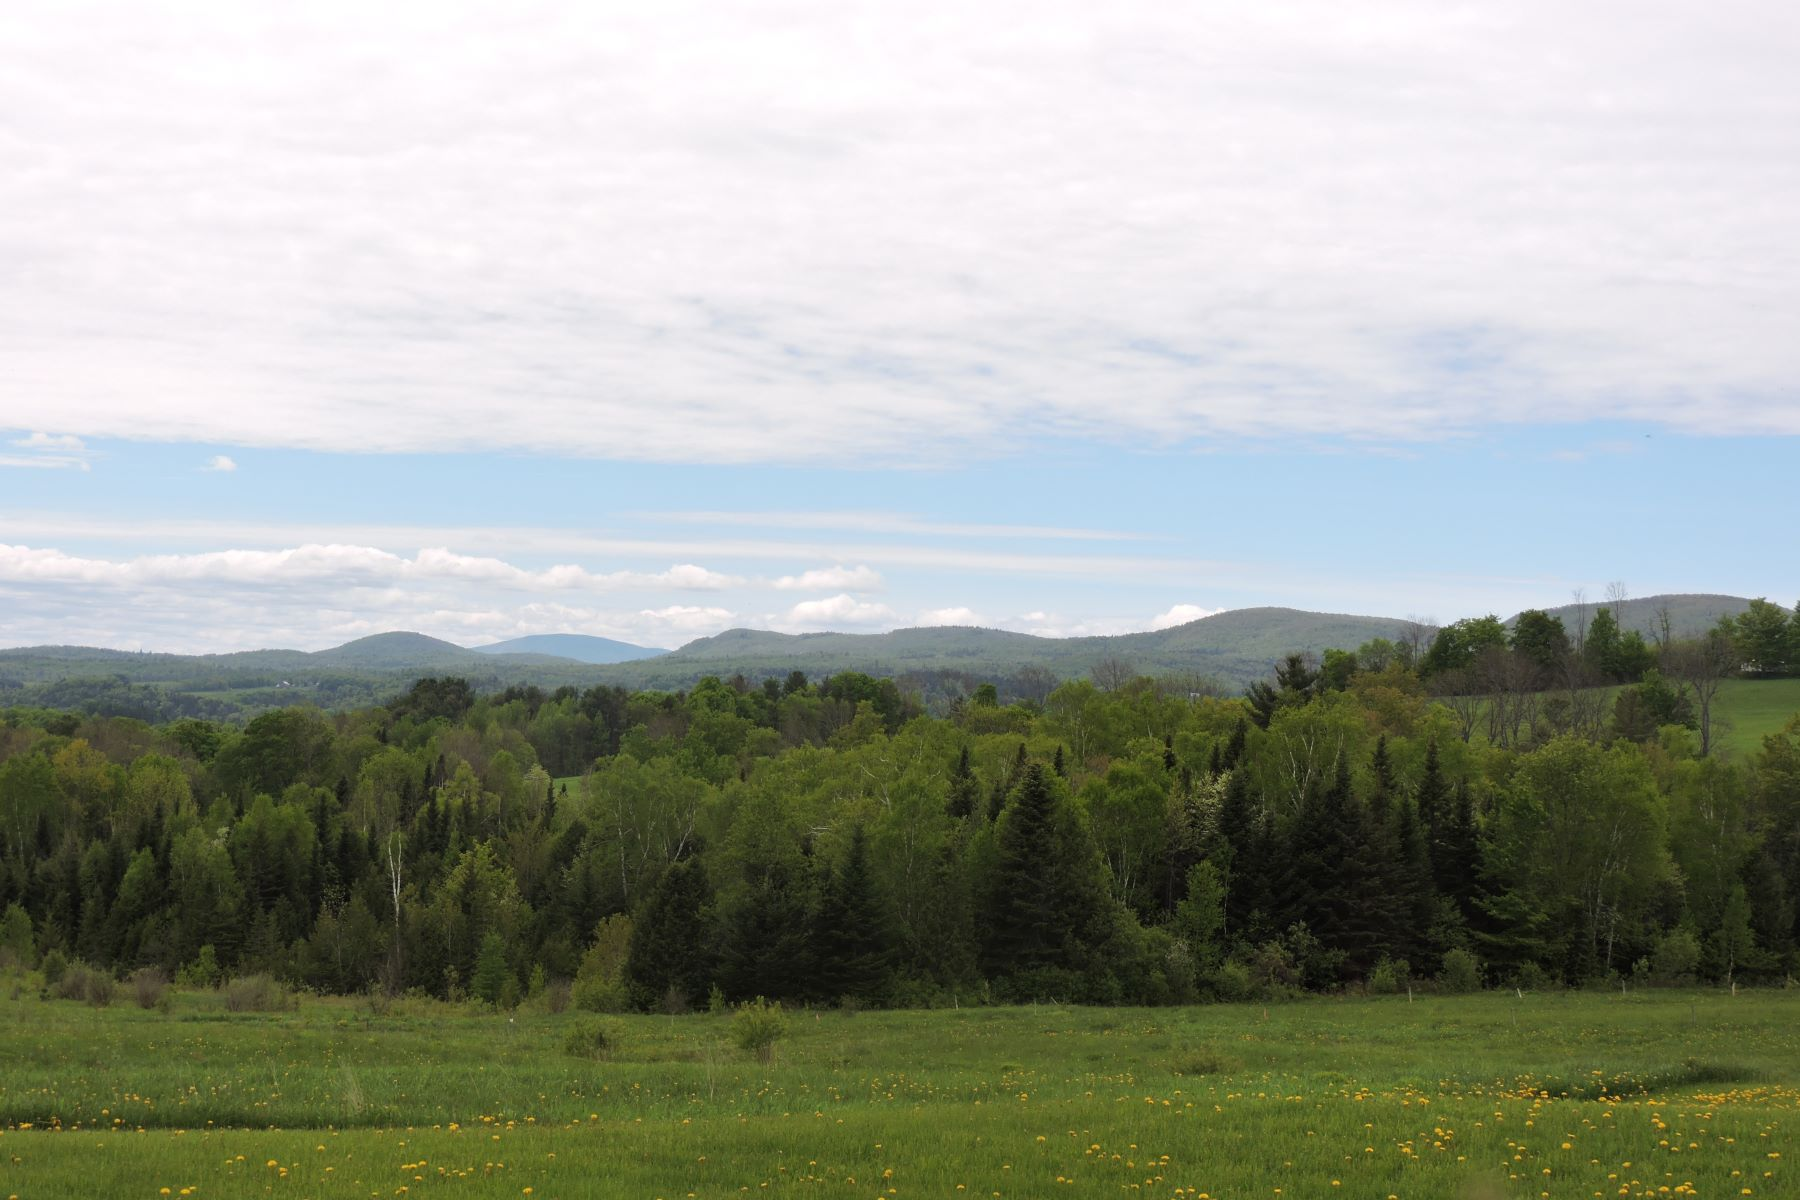 Land for Sale at Walden Hill Road 4.1 and 4., Danville Walden Hill Rd 4.1 and 4. Danville, Vermont 05828 United States